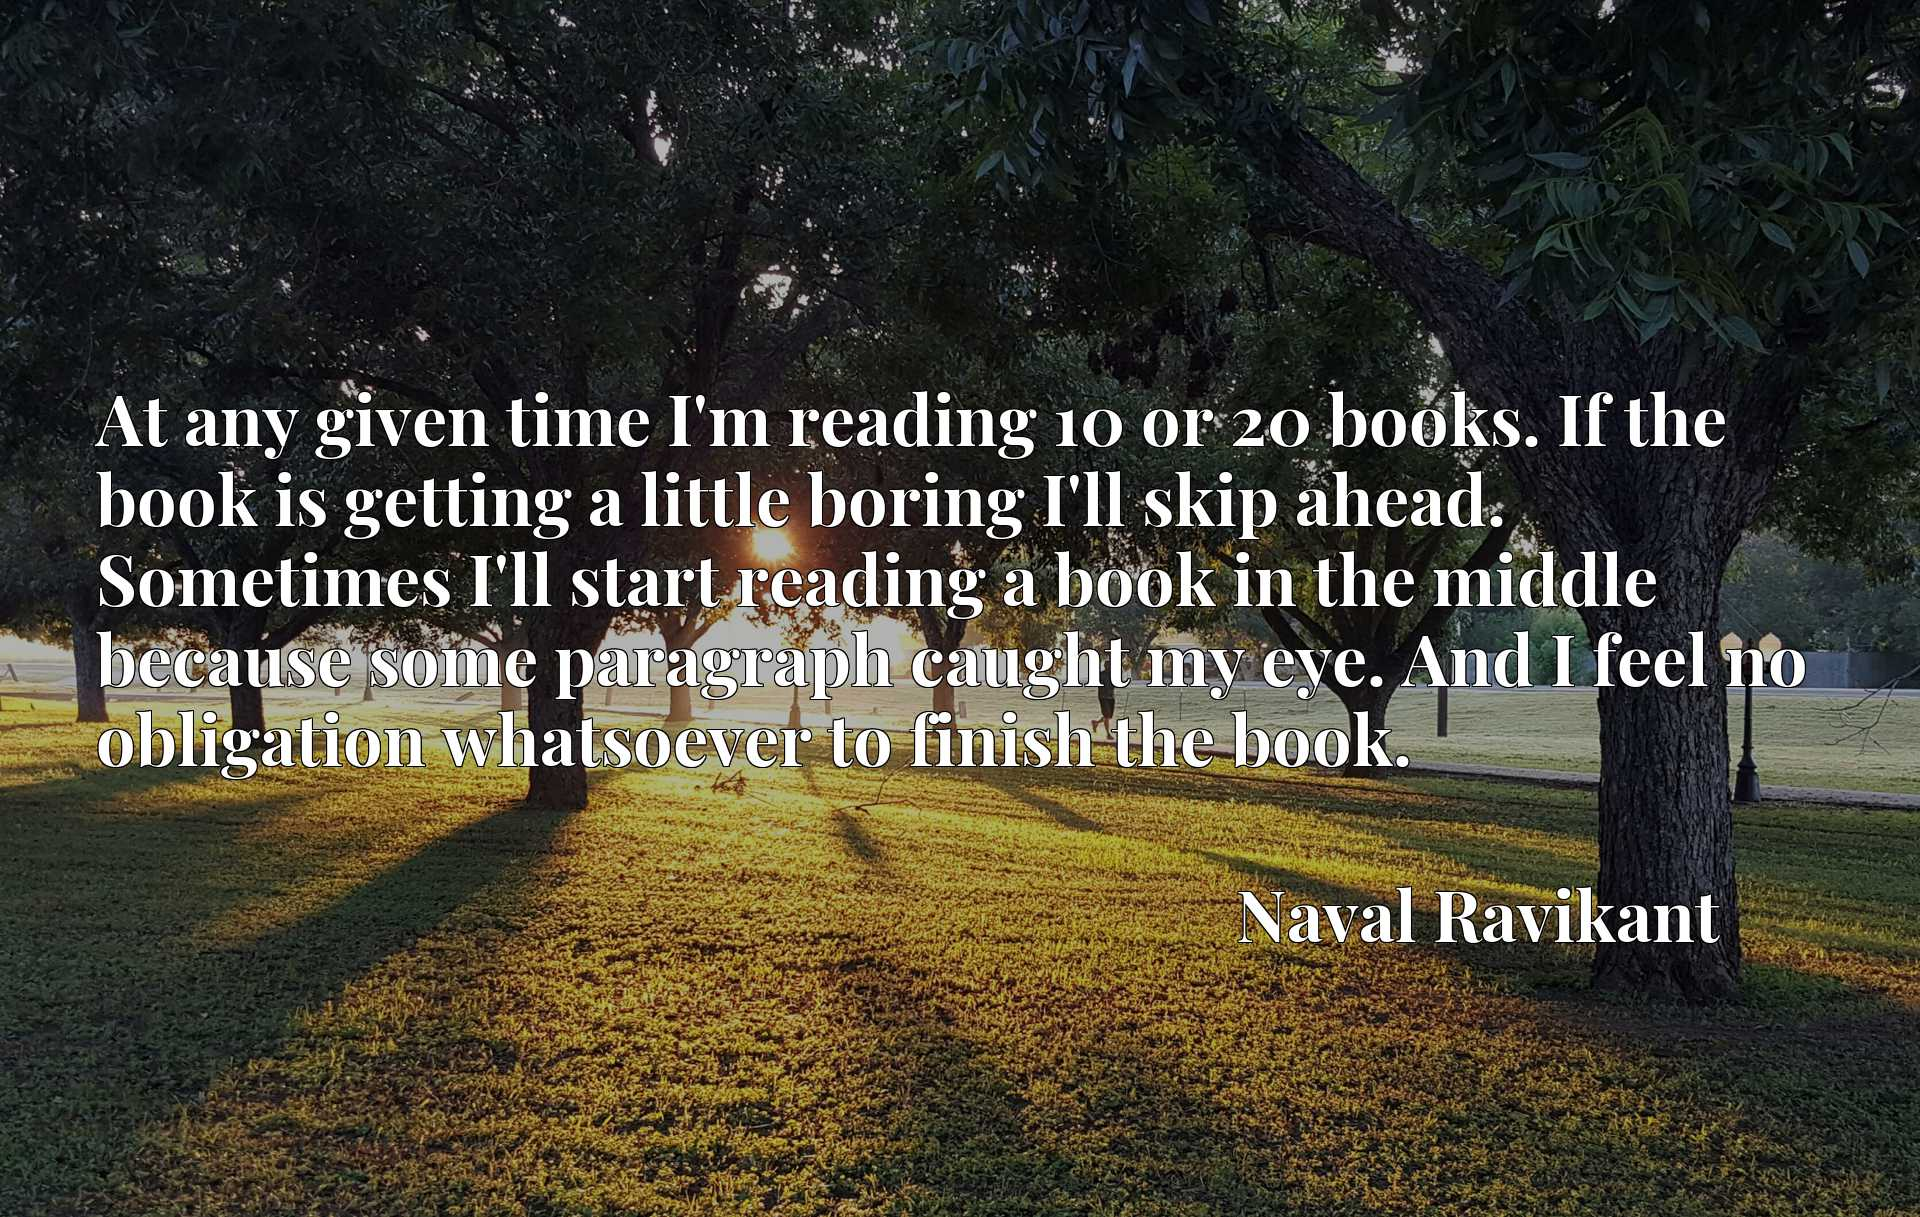 At any given time I'm reading 10 or 20 books. If the book is getting a little boring I'll skip ahead. Sometimes I'll start reading a book in the middle because some paragraph caught my eye. And I feel no obligation whatsoever to finish the book.